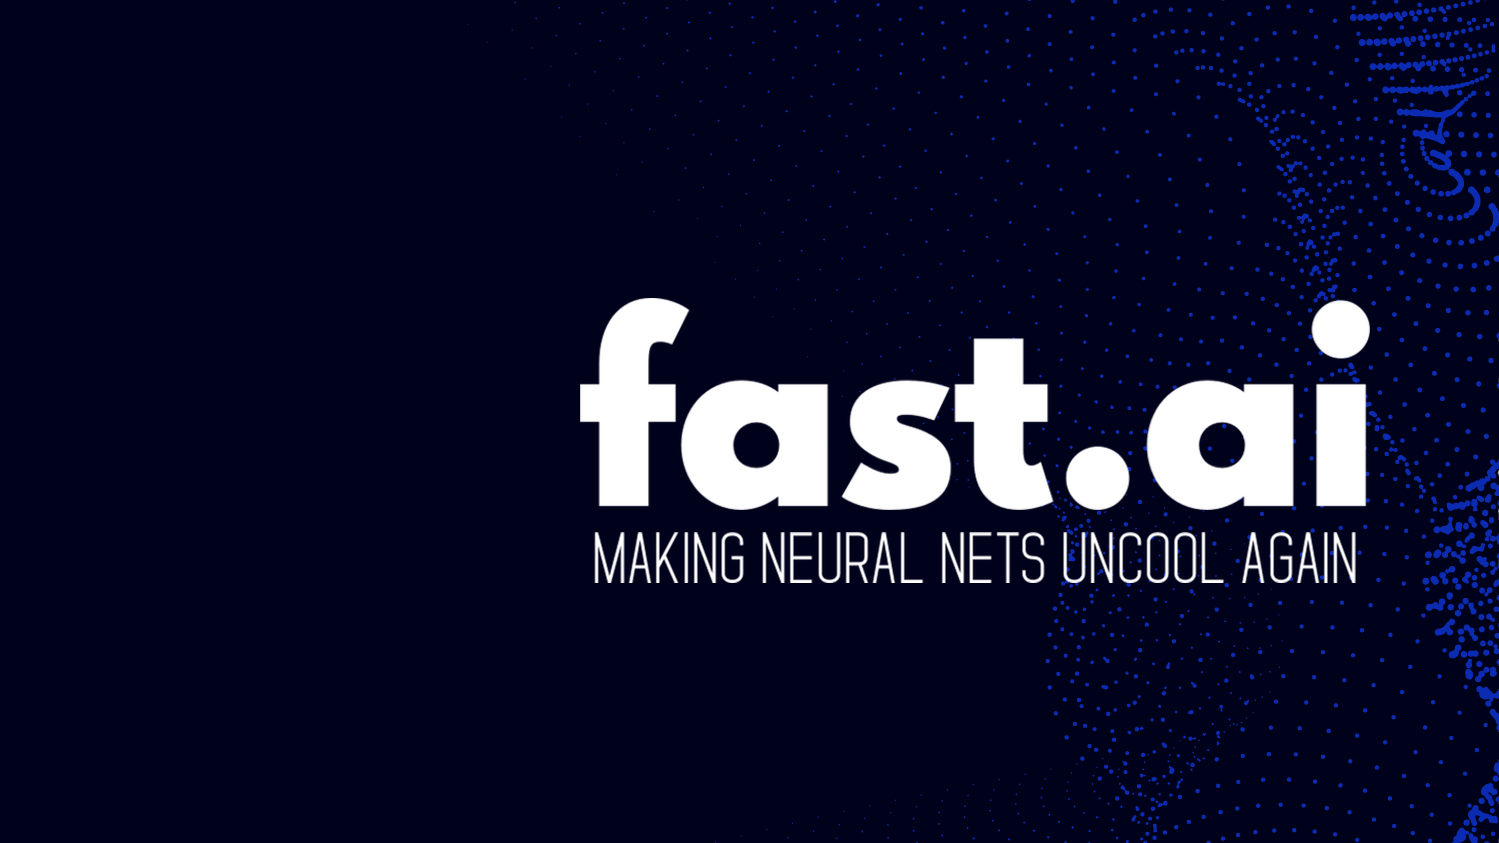 Fast.ai study group the Netherlands